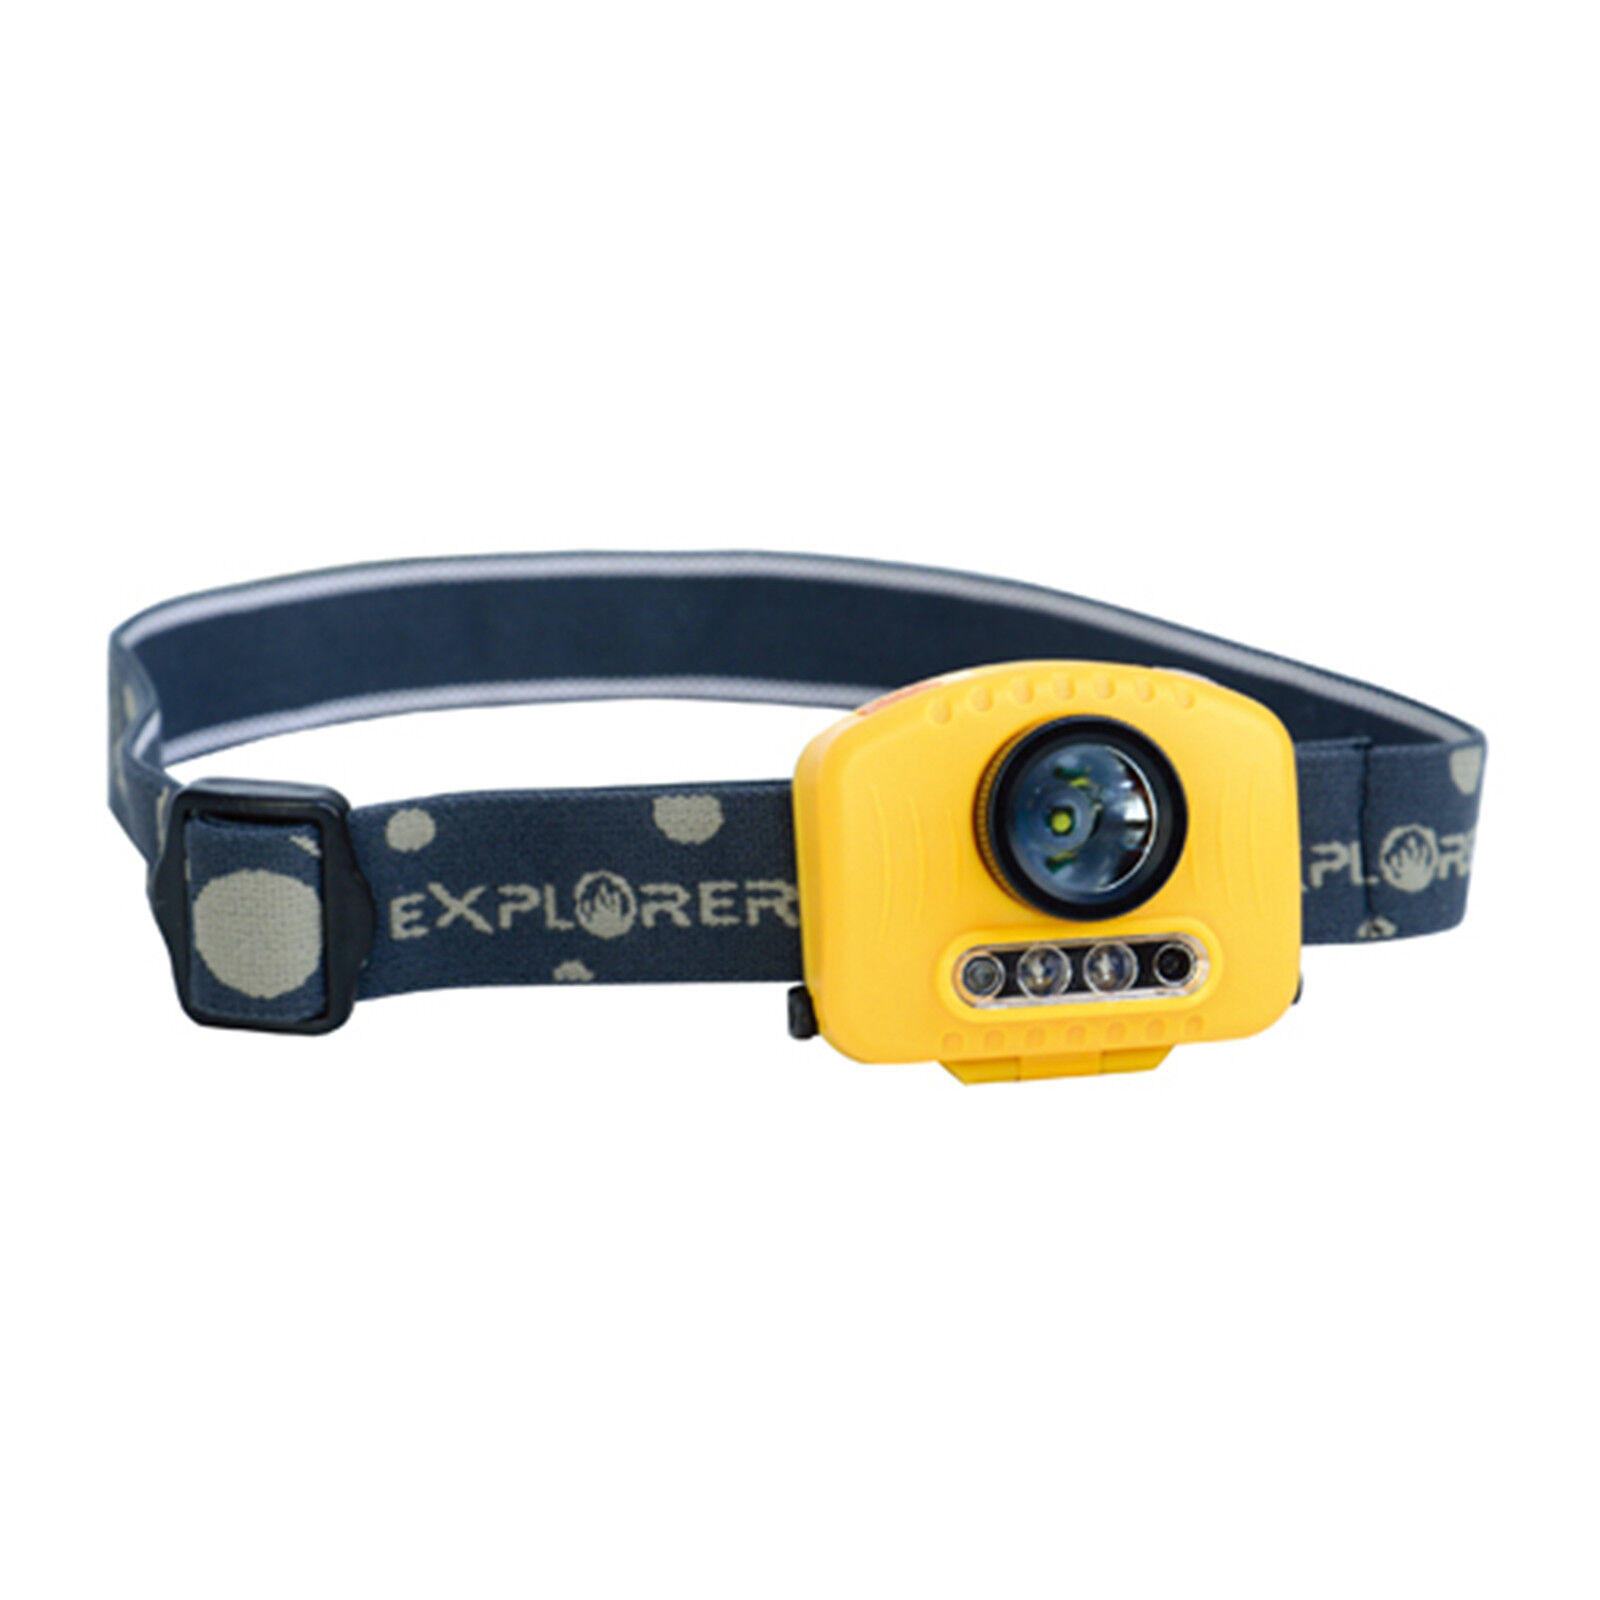 New 3 Mode Adjustable LED Headlight Headlamp Flashlight Waterproof SLH-180LM-5